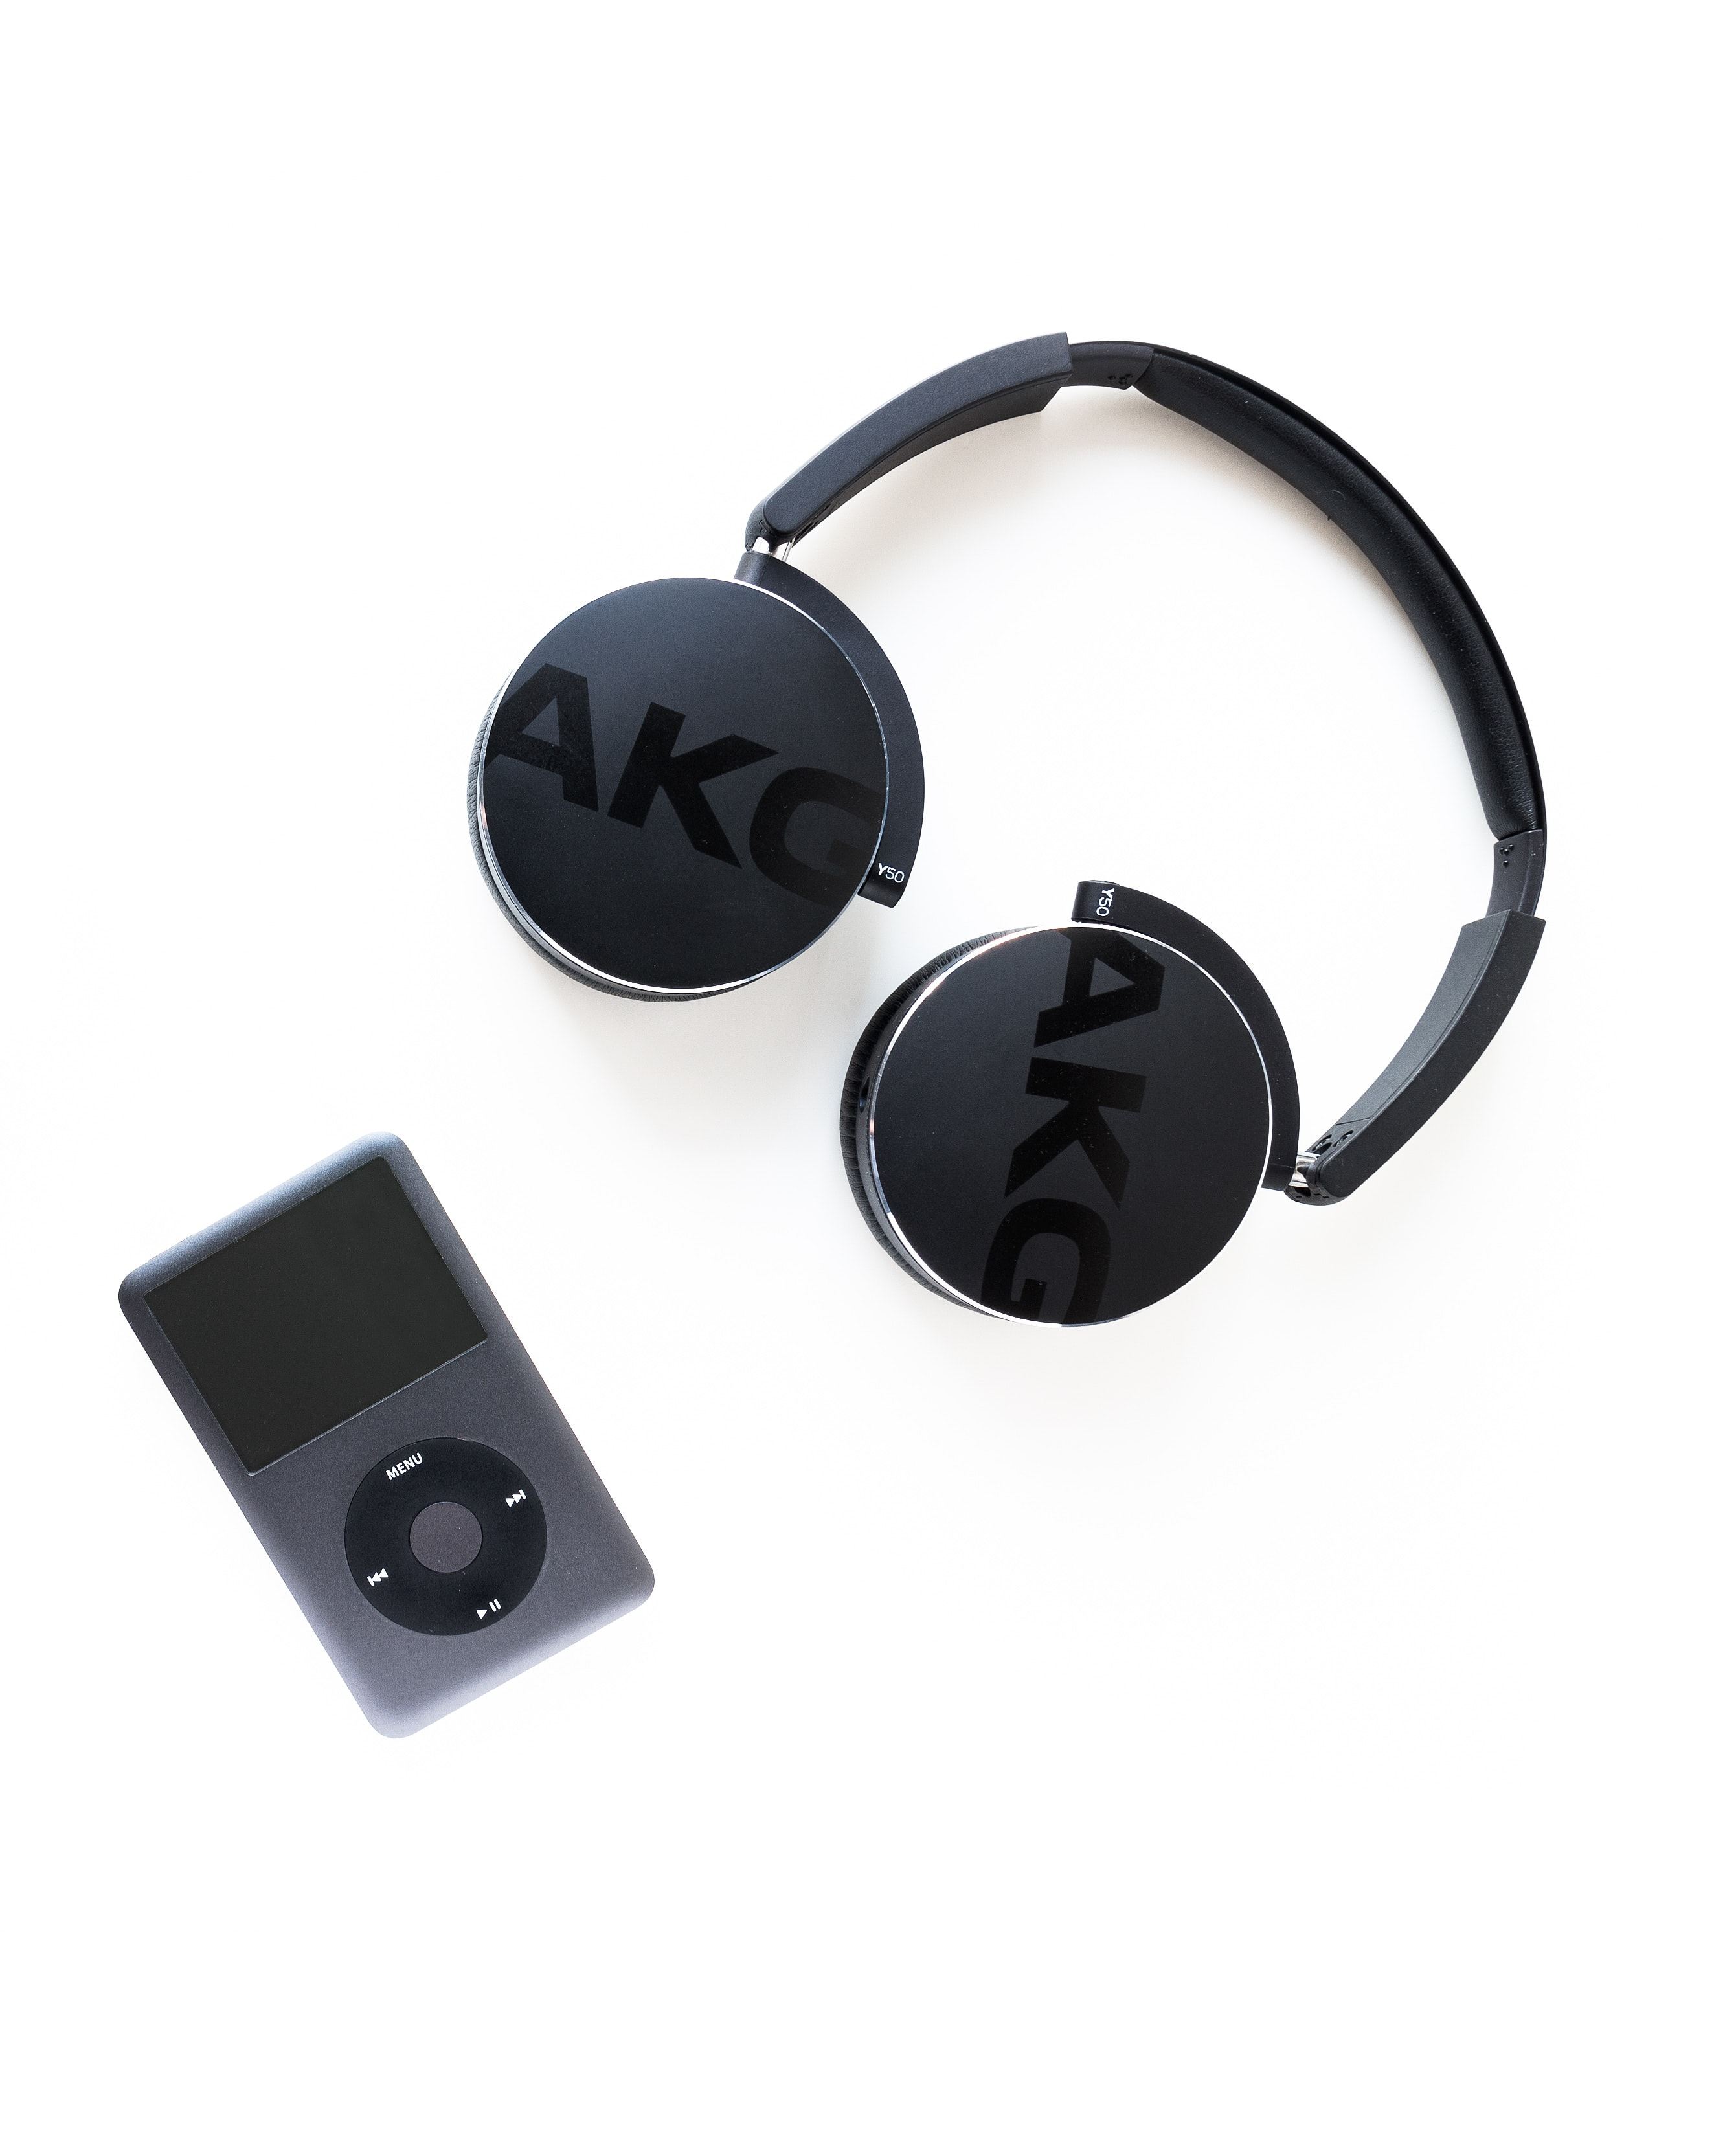 black AKG wireless headphones